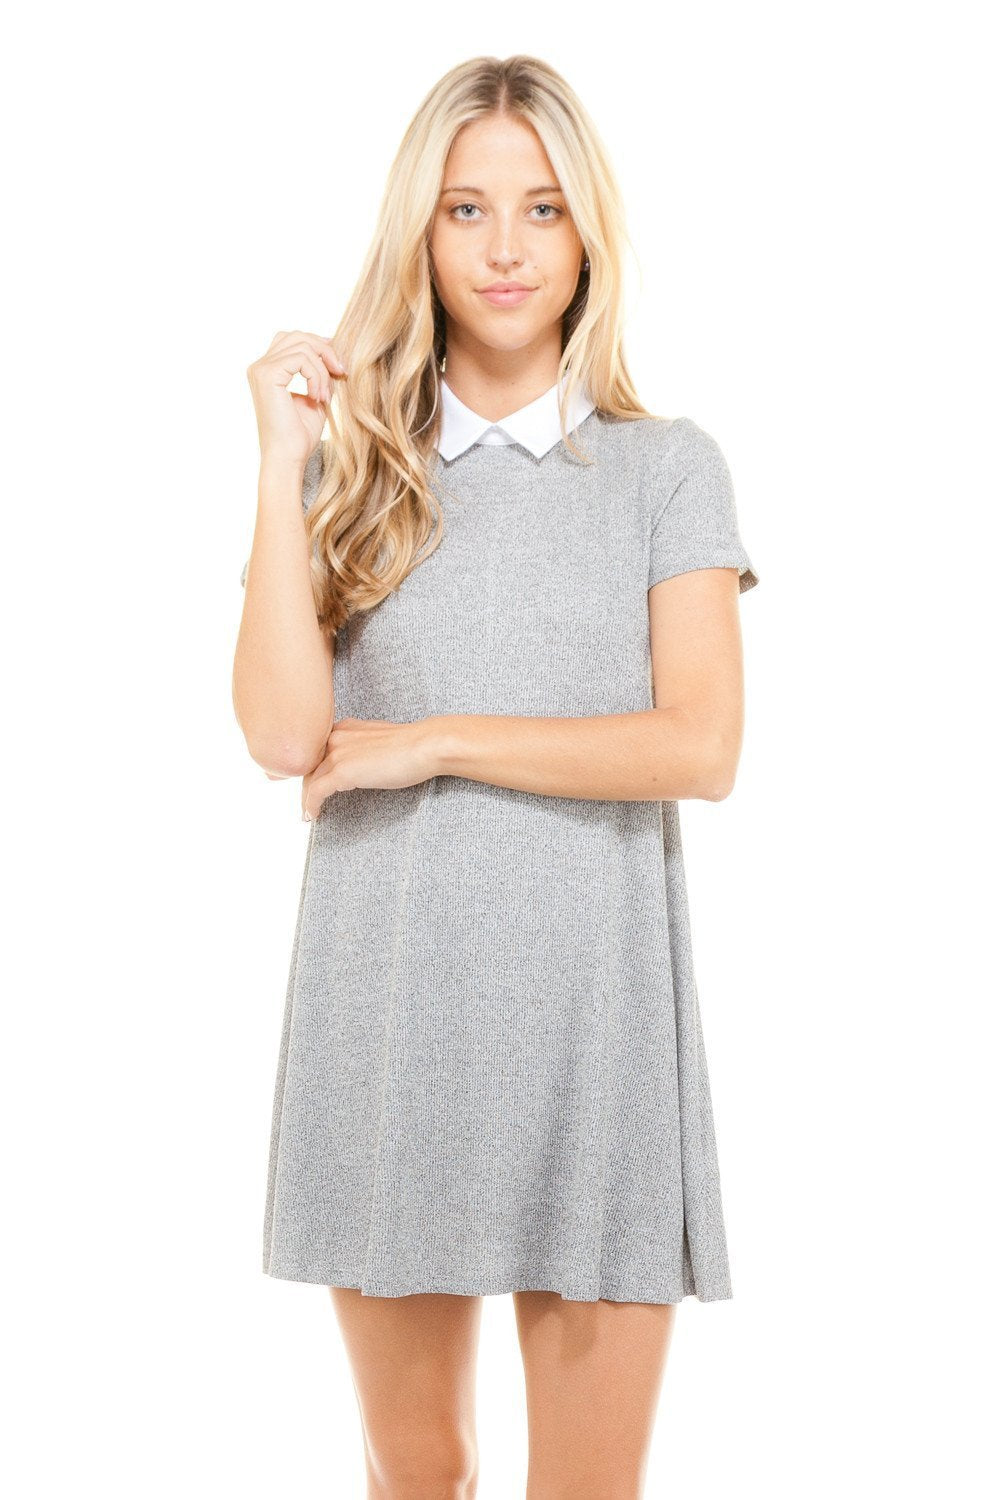 Women's Loose Fitted Collar T-shirt Dress - Danish Fashion & Living Online Store SALE